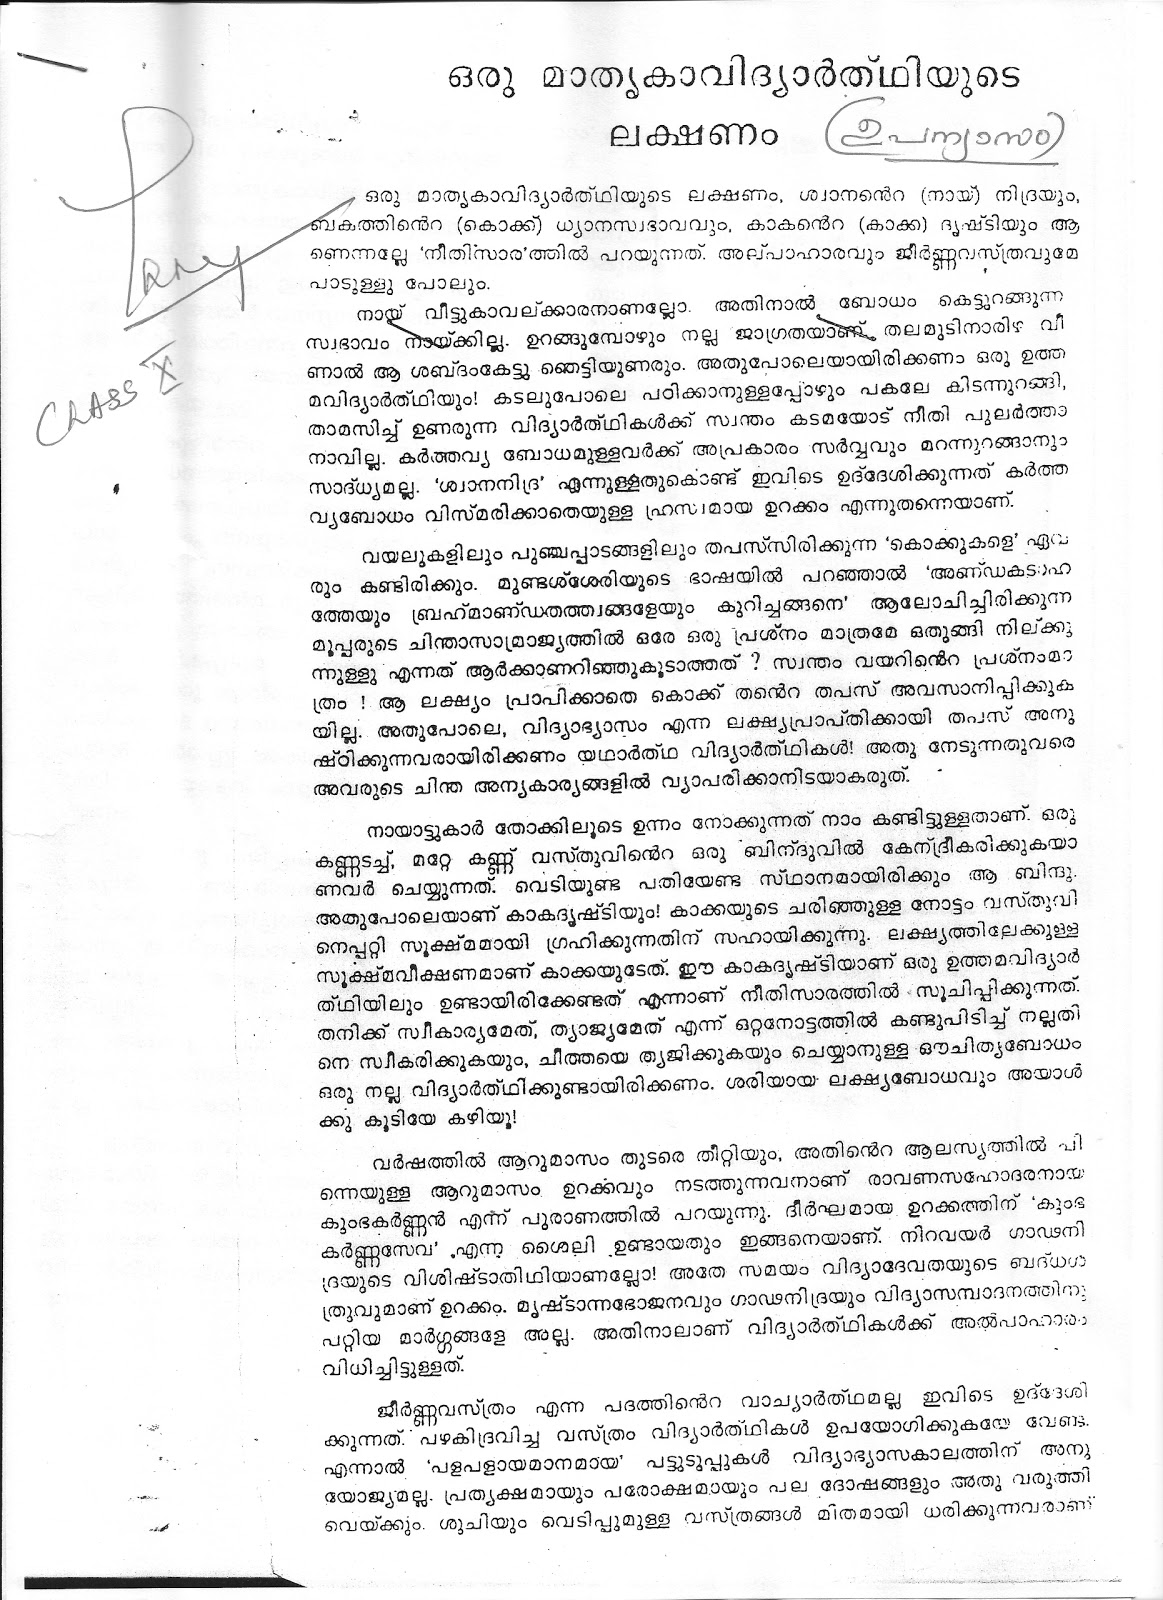 Students and social service essay in malayalam | Thesis statement ...